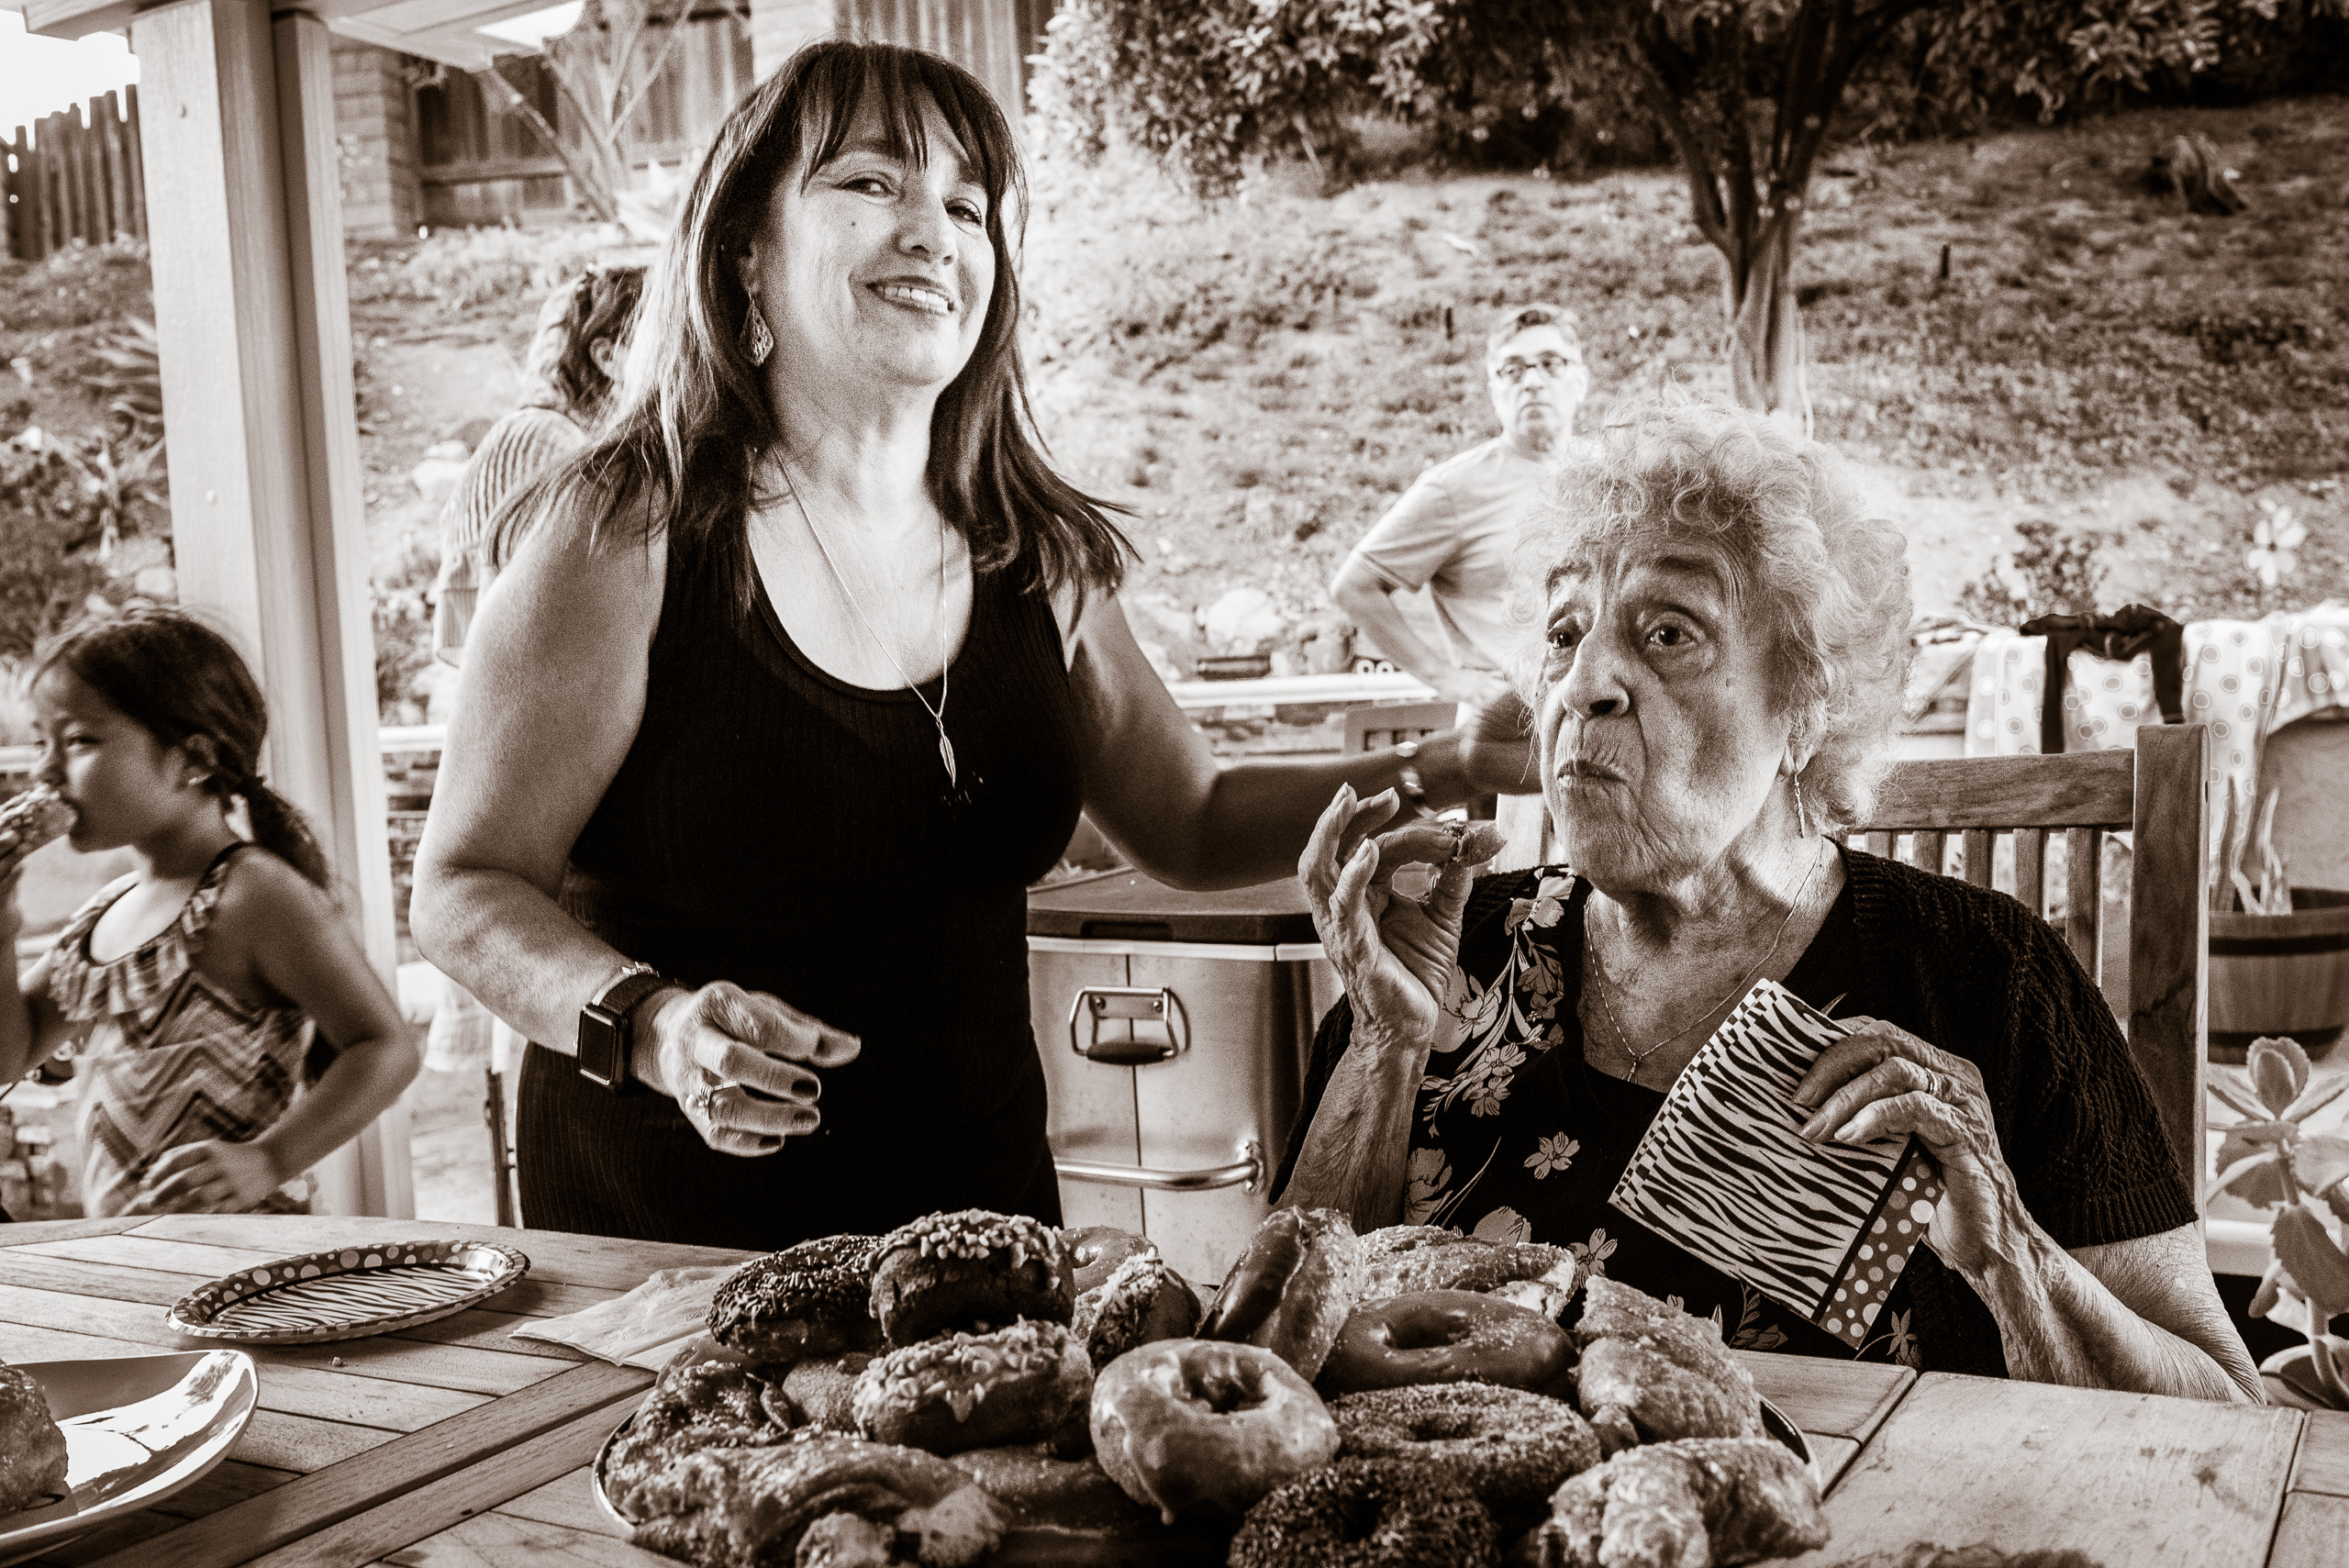 Mary Perez and her daughter Alicia Vargas having a donut at Mary's 88th birthday party in Pomona, CA